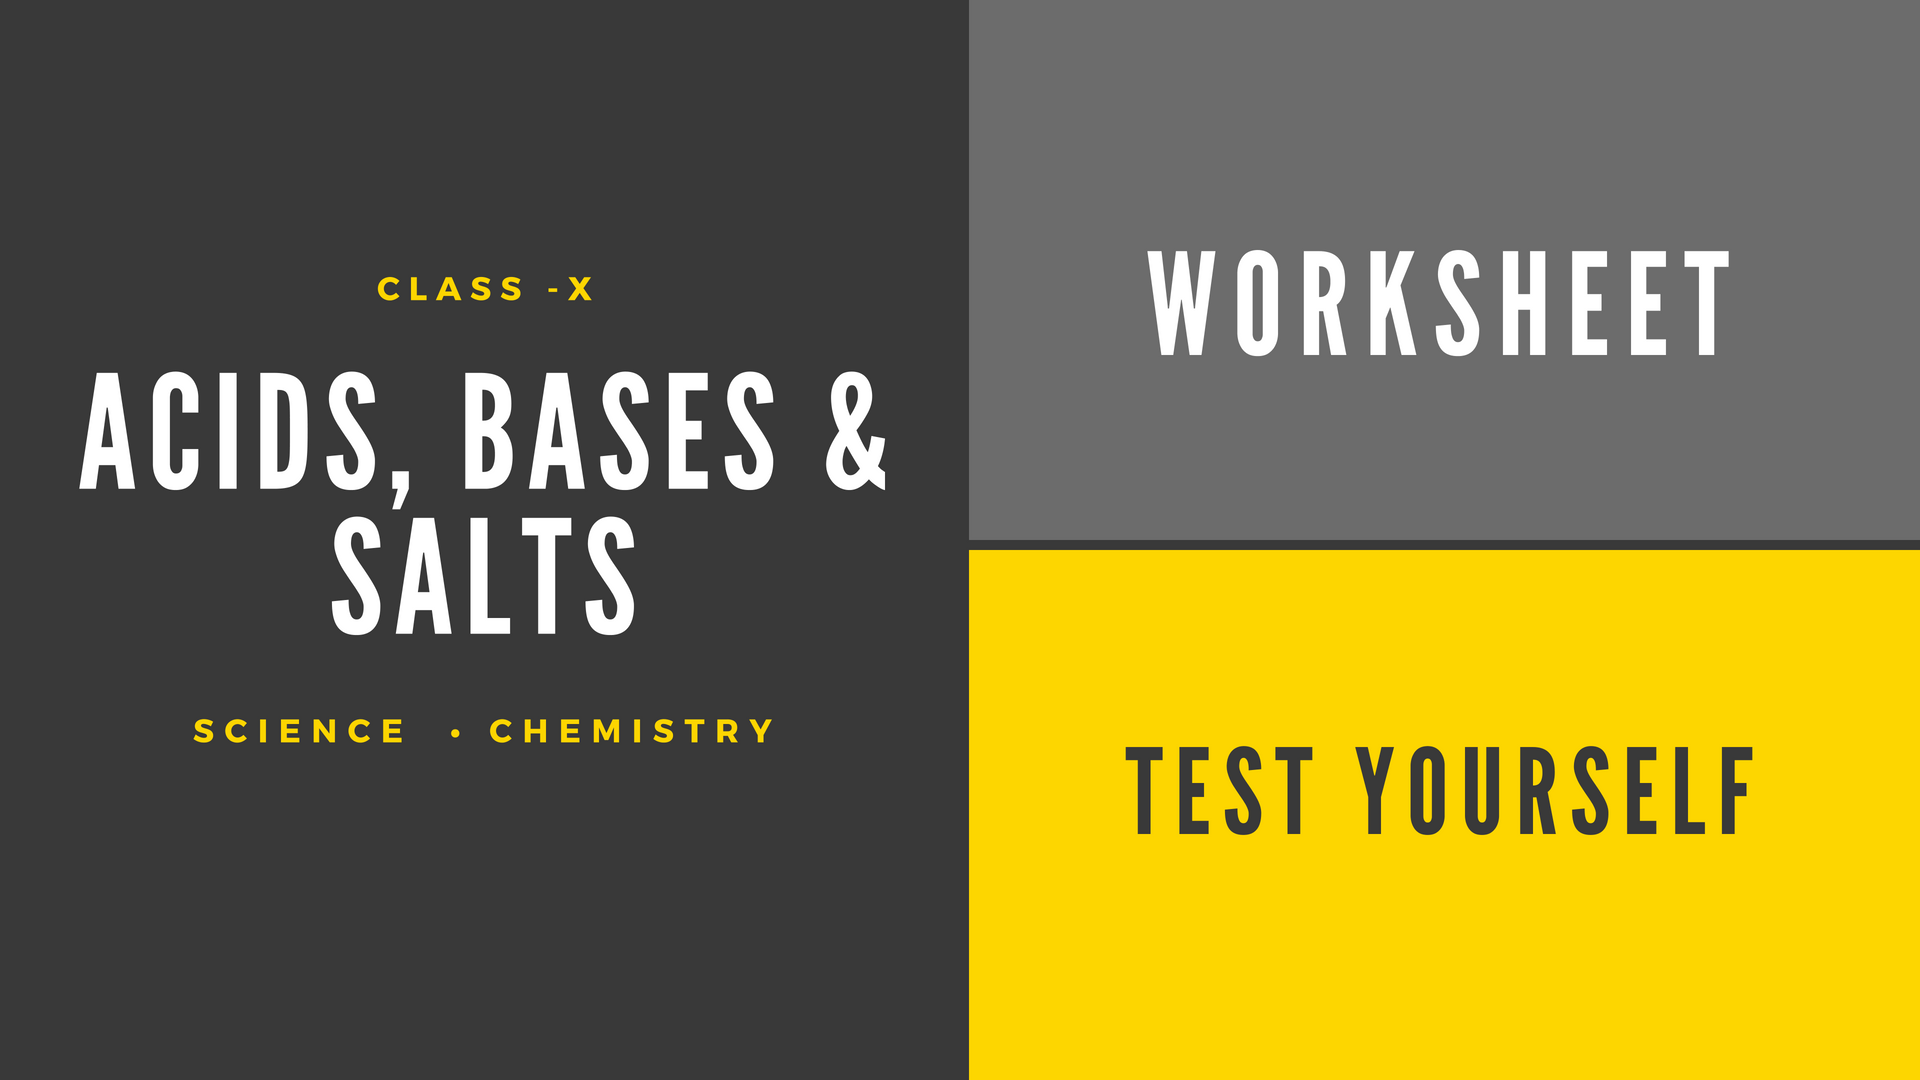 Worksheet 1: Acids, Bases and Salts | CBSE SCIENCE